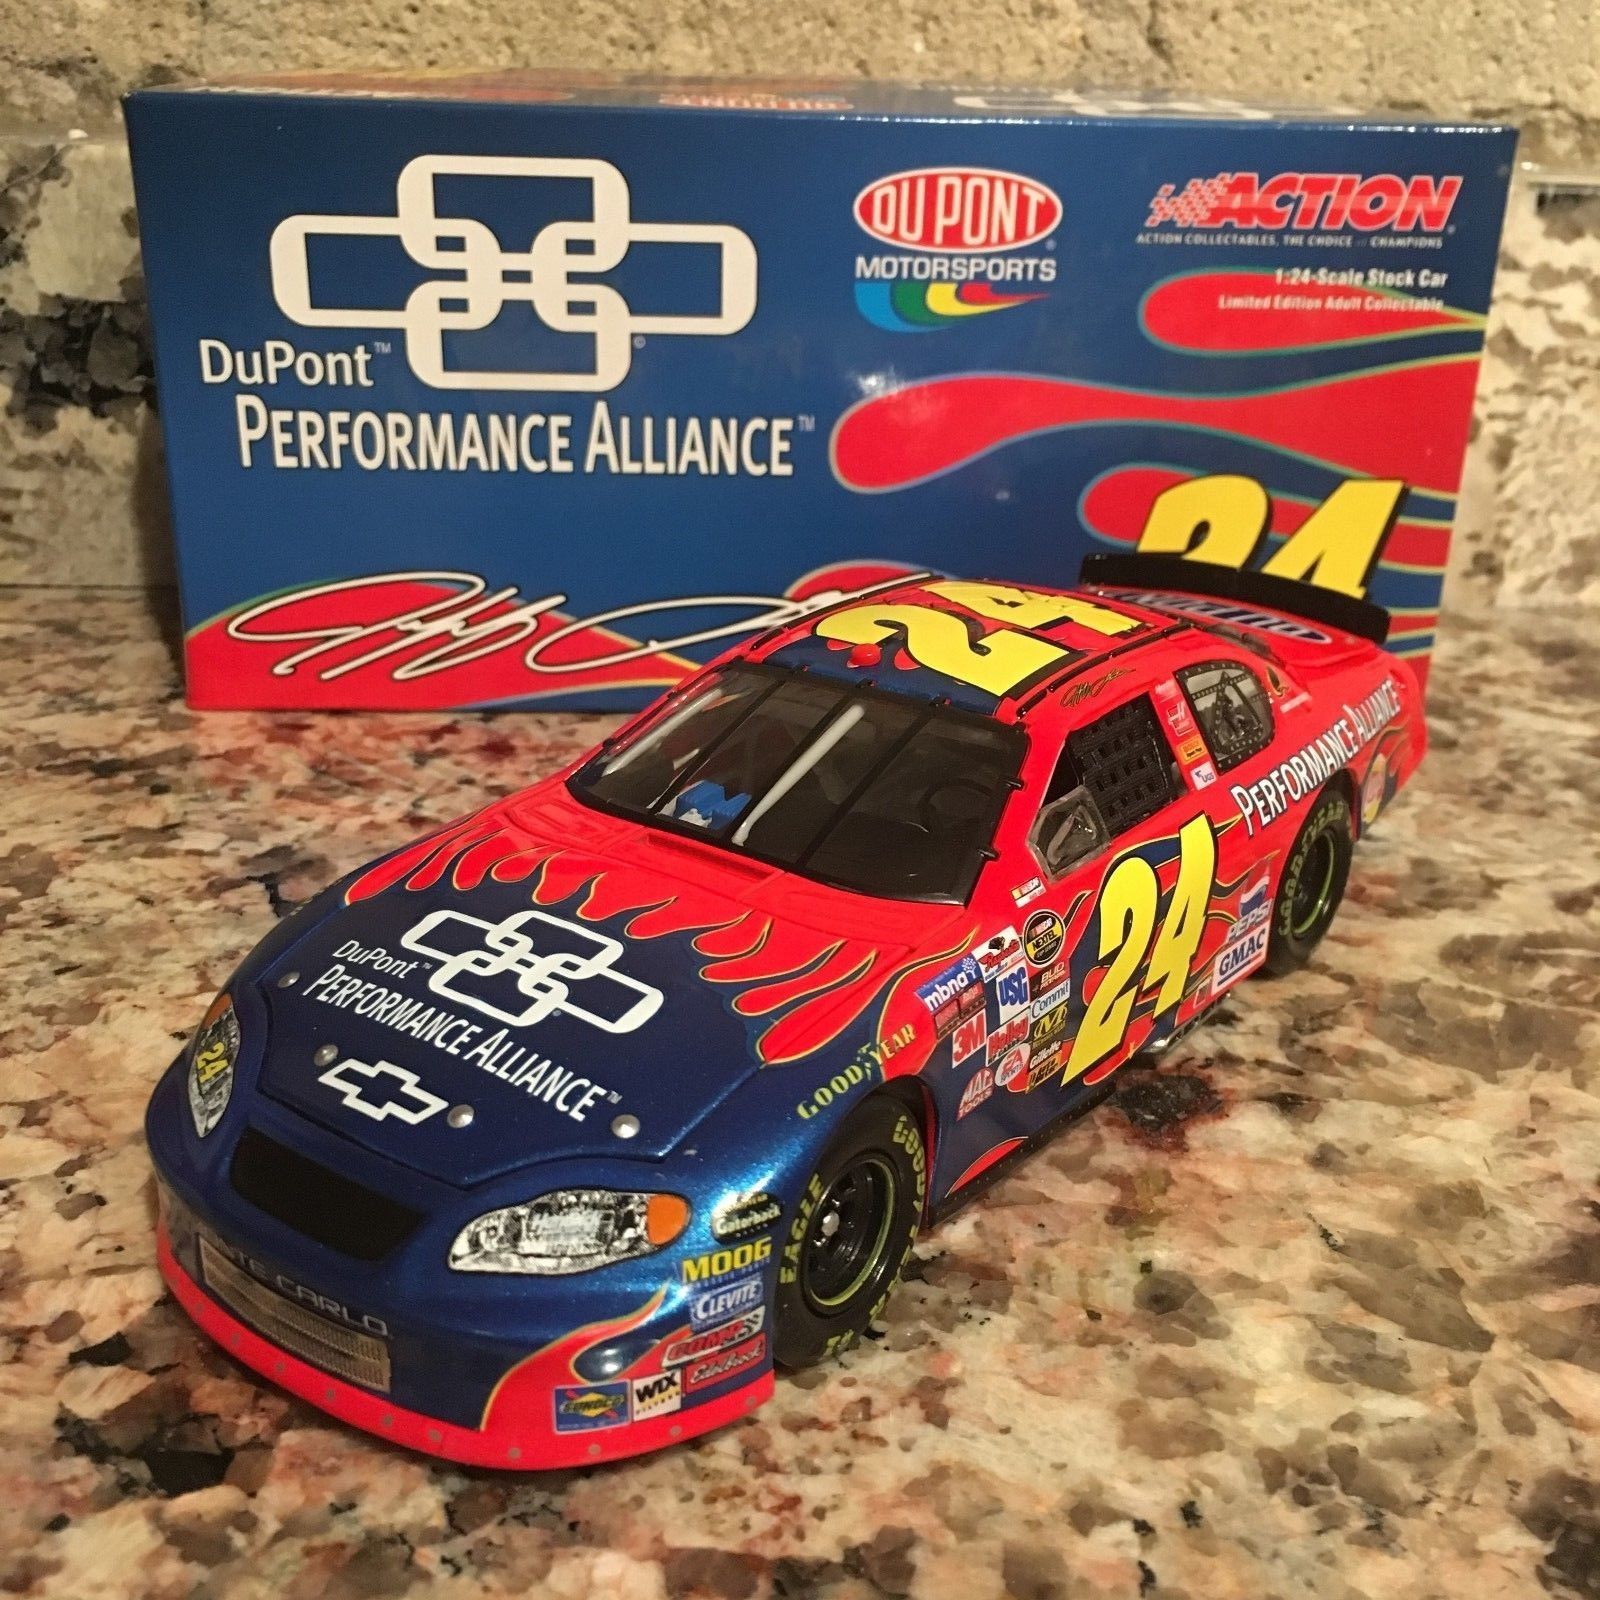 Jeff Gordon No. 24 DuPont/Performance Alliance 2005 Monte Carlo 1:24 Die Cast Car